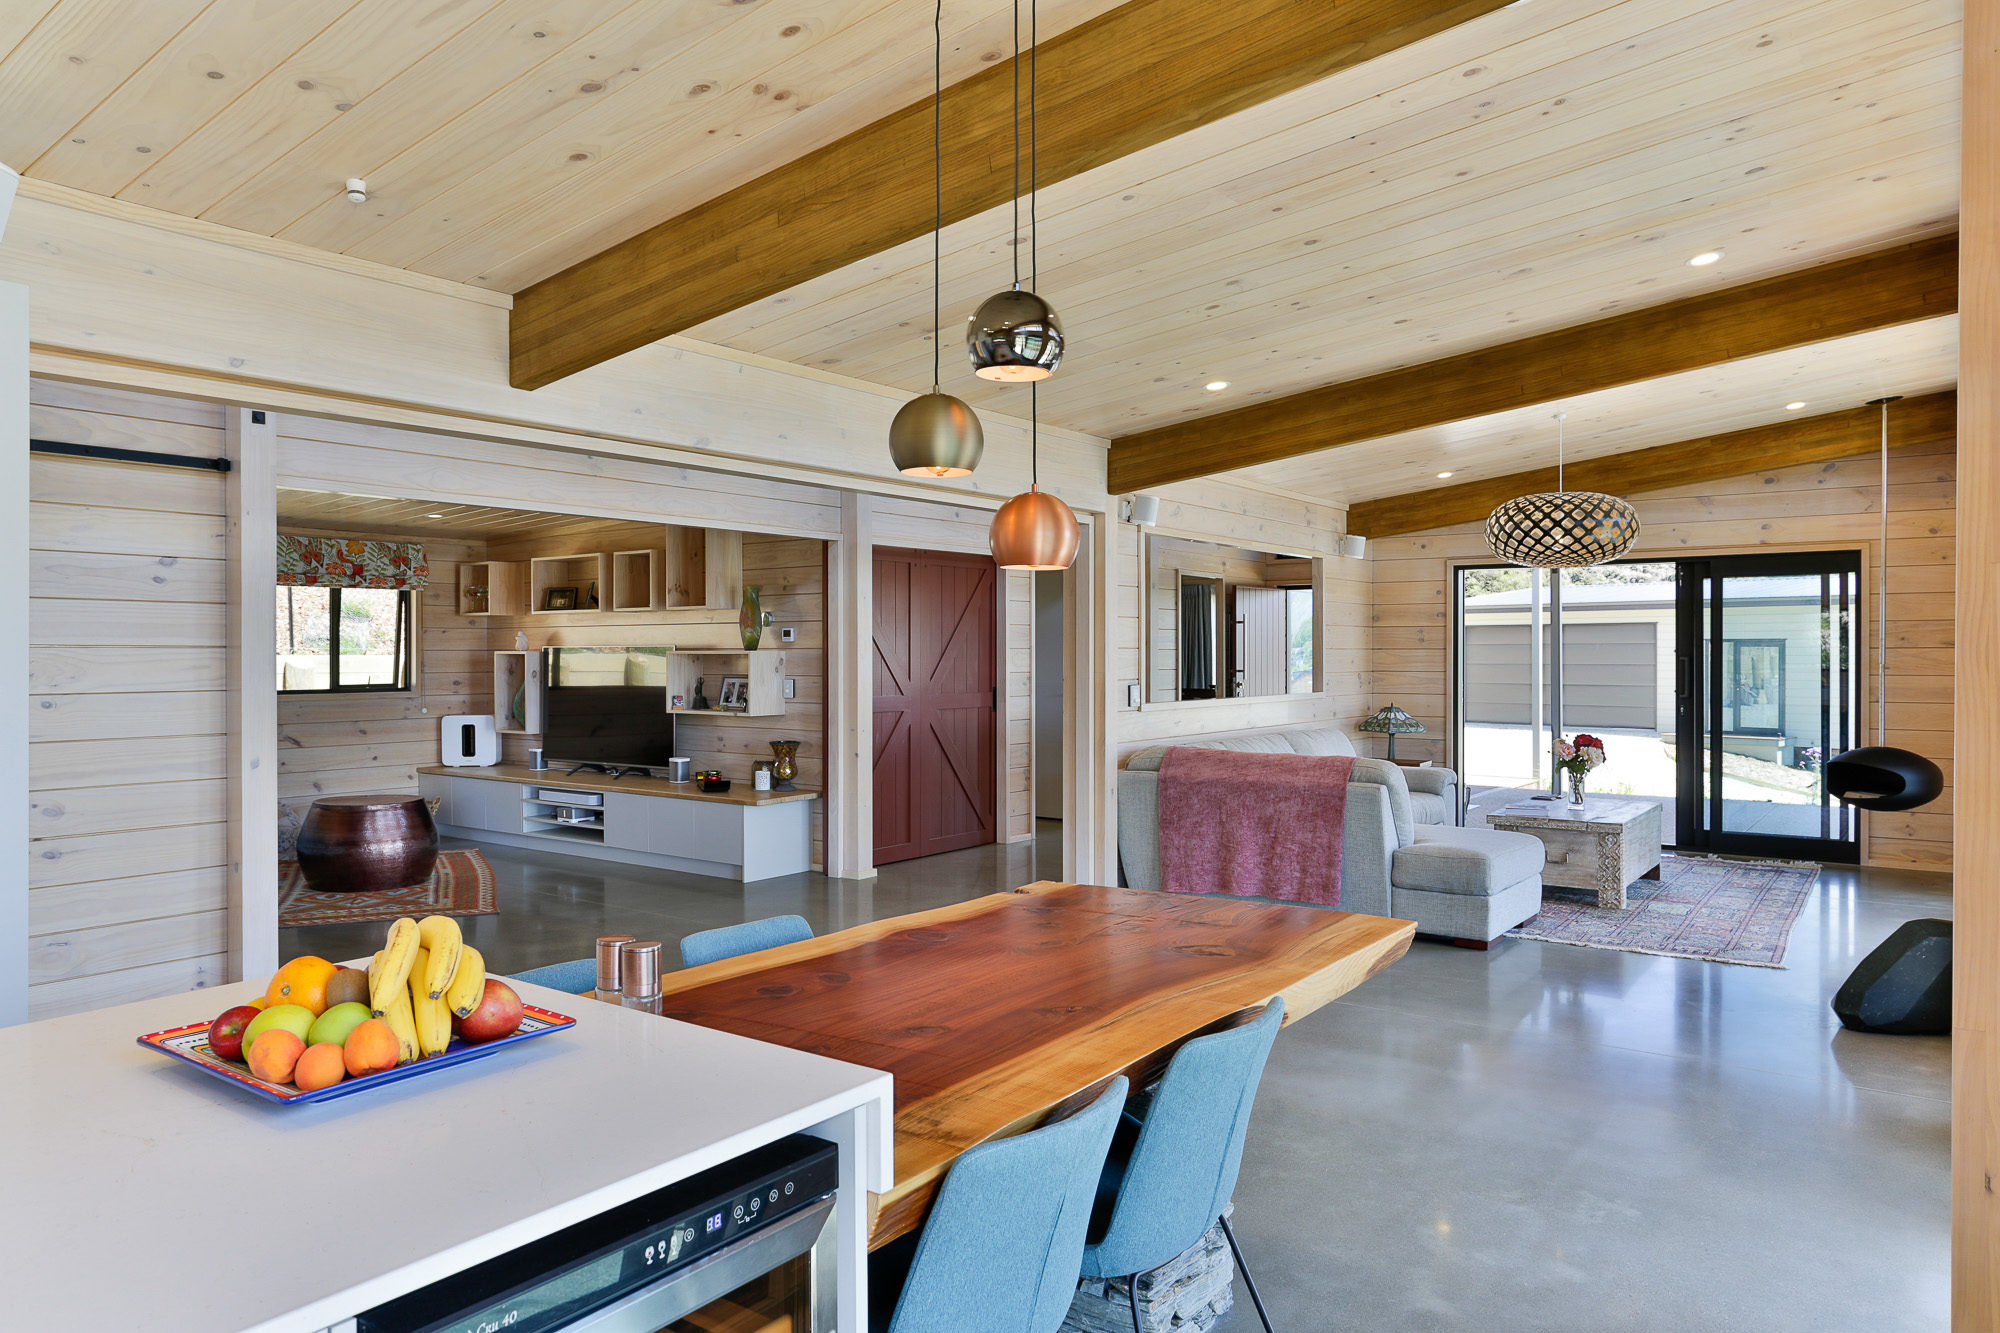 Large barn door opens up living space